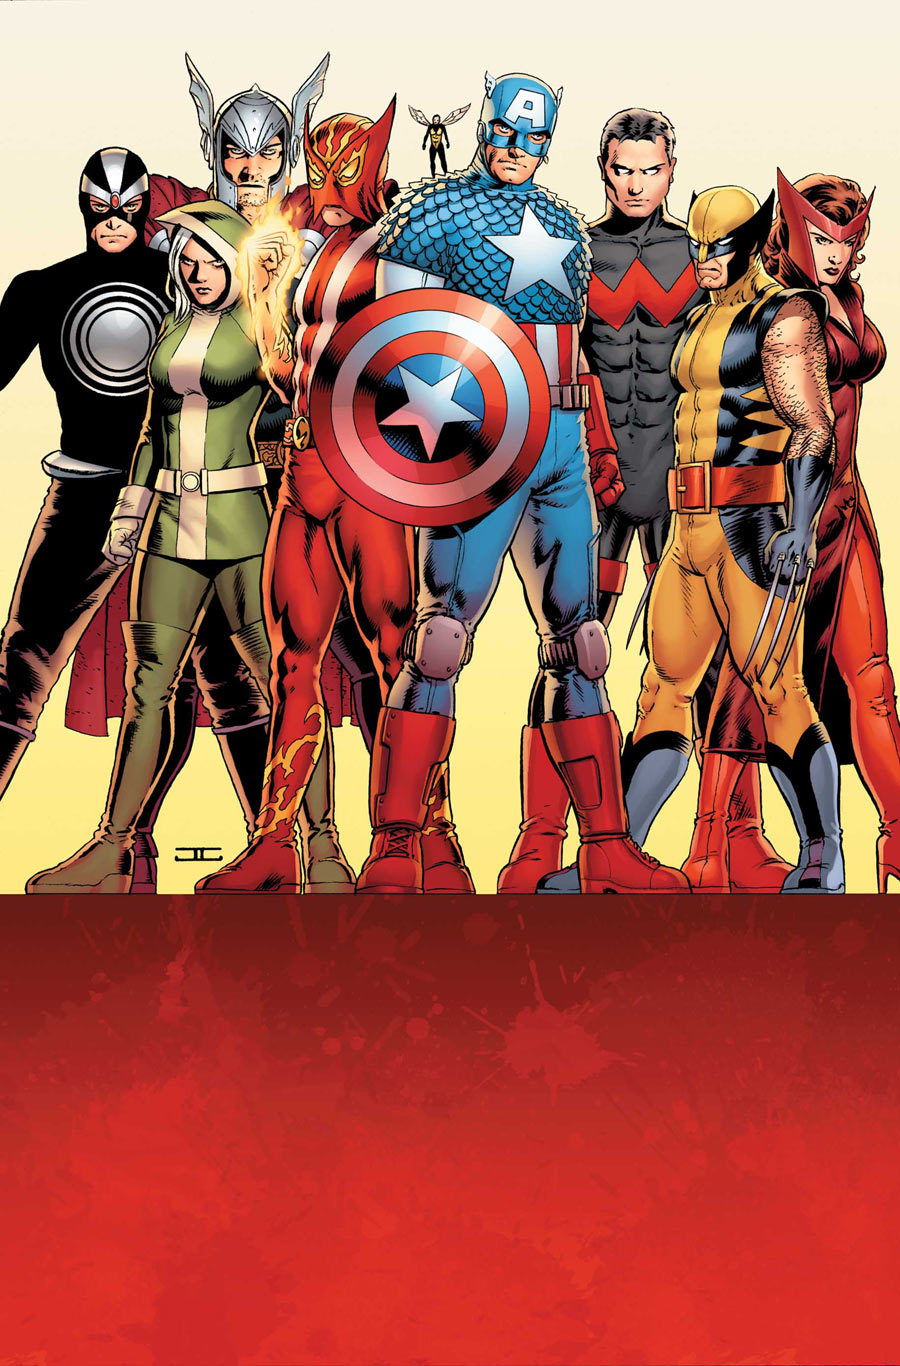 Marvel comics for February 2013: this is the cover for Uncanny Avengers #5, drawn by John Cassaday. Cassaday is always reliable when it comes to the team shot in the simple standing pose.